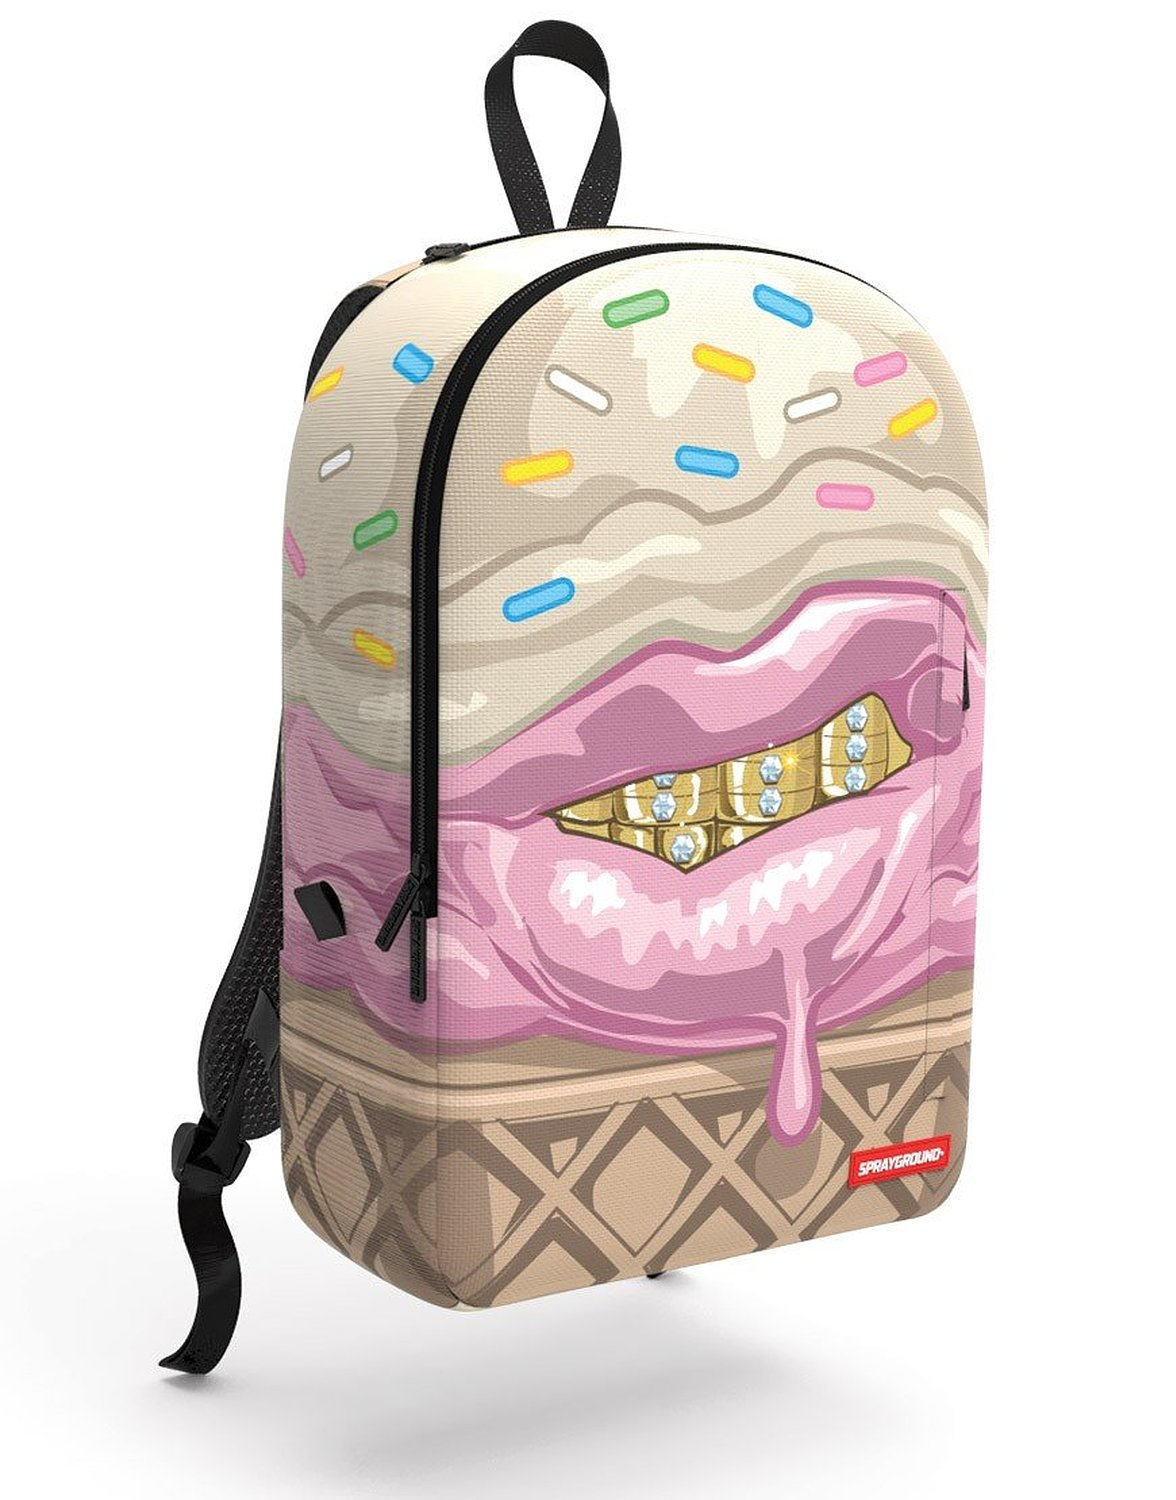 Amazon Com Sprayground Ice Cream Grillz Backpack Clothing